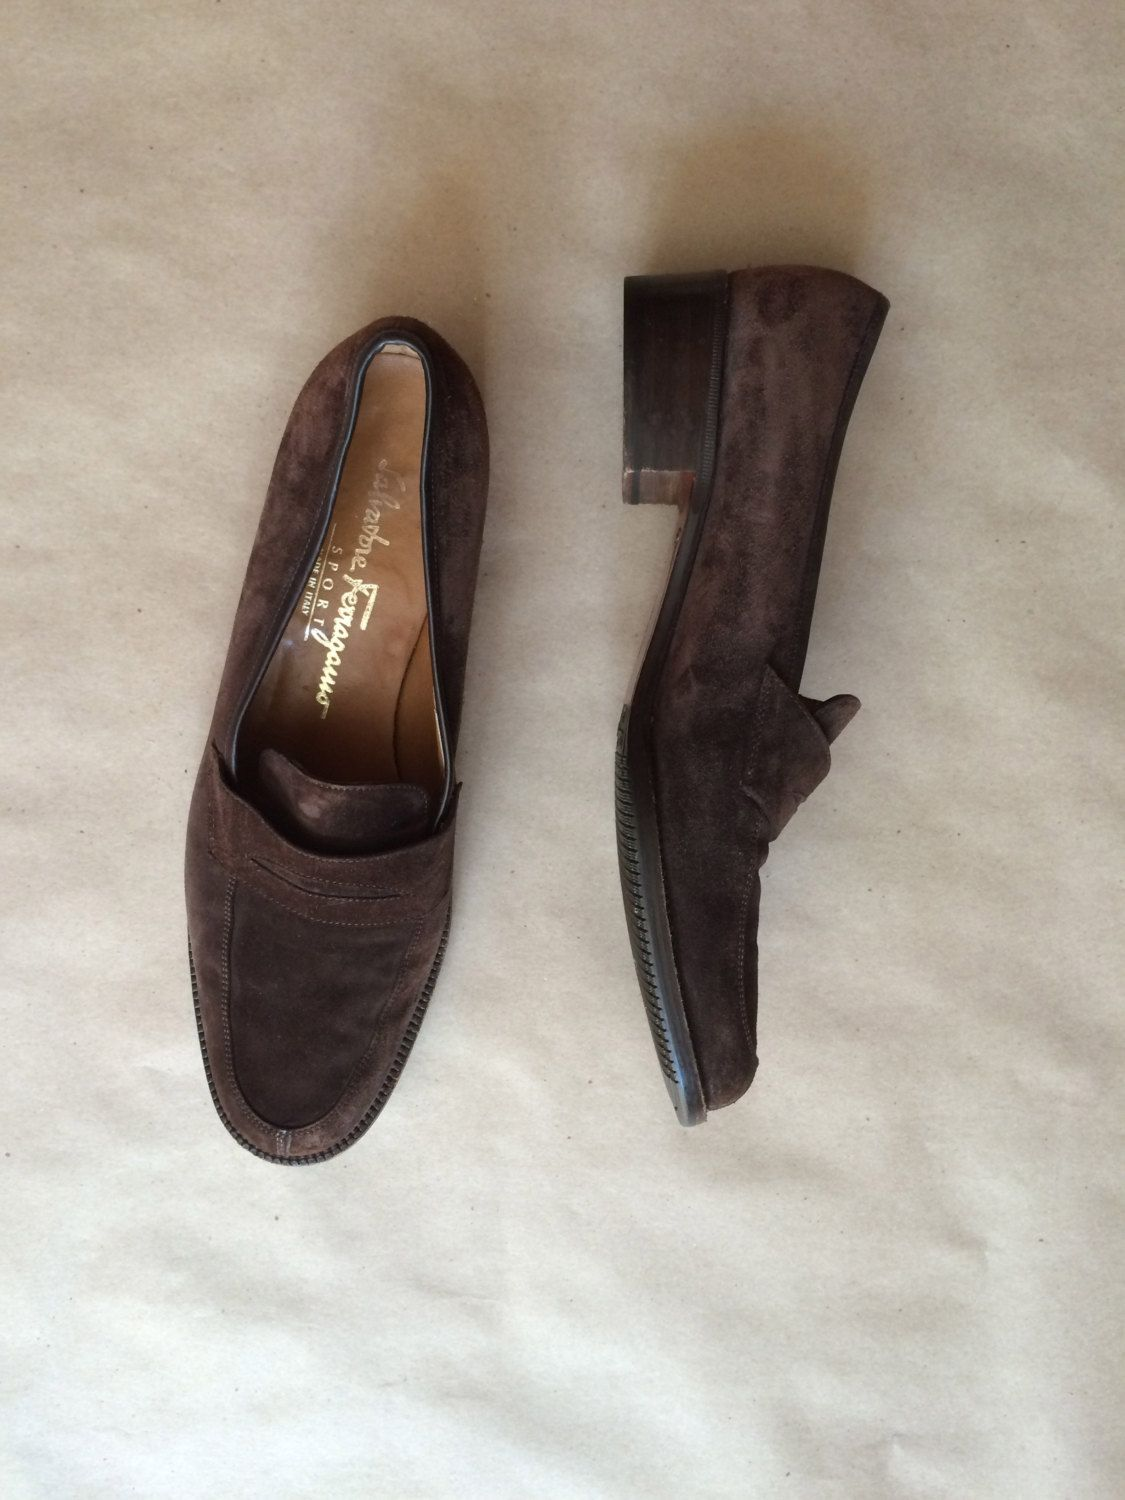 63fd75b0884a7 90's vintage suede Ferragamo loafers / chunky wooden heel ...